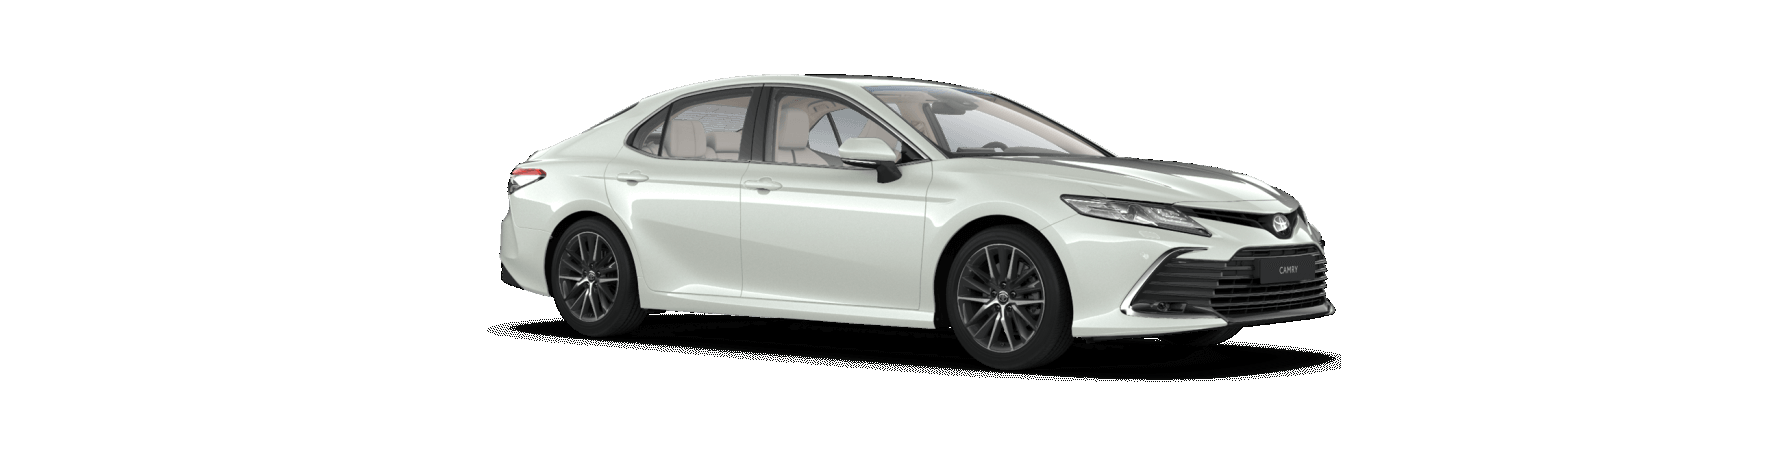 camry_conventional_1780x466